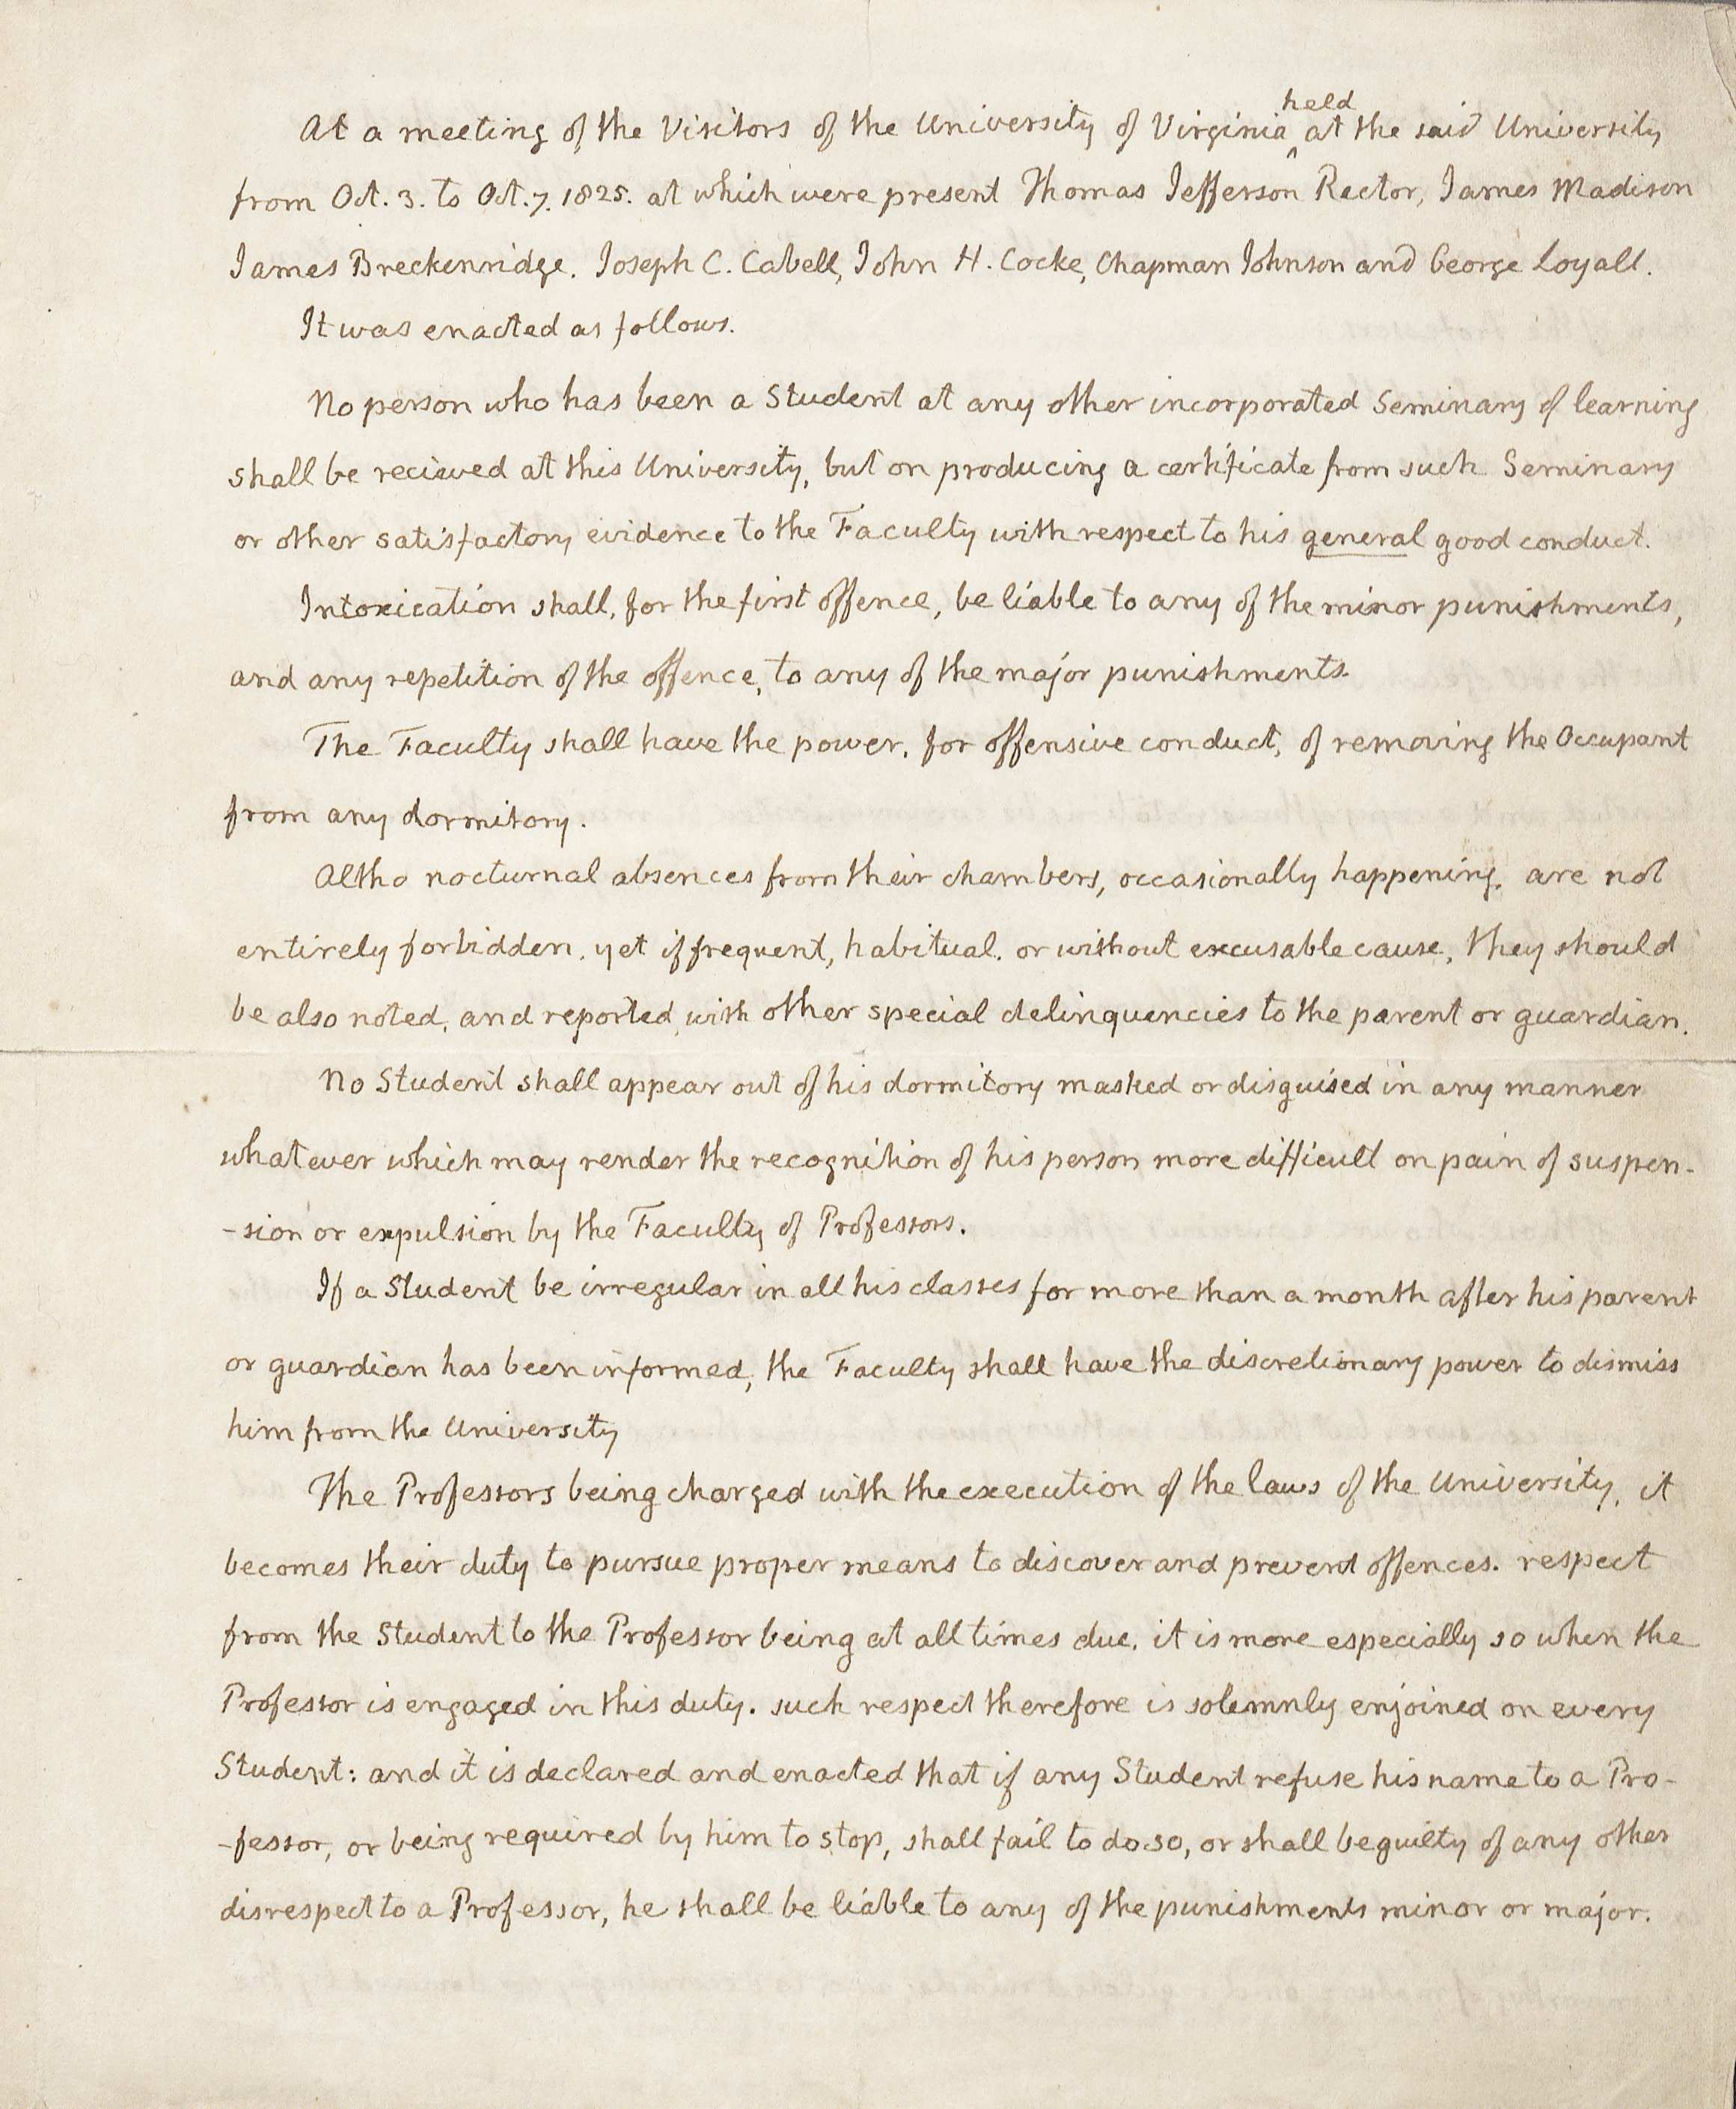 "Regulations of the University, in the Hand of and Signed by Thomas Jefferson, Rector, 3-7 October 1825 (MSS 10300) This manuscript, written by Thomas Jefferson, defines all of the rules of the University of Virginia.  In these rules, Mr. Jefferson places a lot of power in the hands of the Professors and charges them ""with the execution of the laws of the University.""  He gives them the responsibility of disciplining students for actions committed outside of the classroom in places like the dormitories."